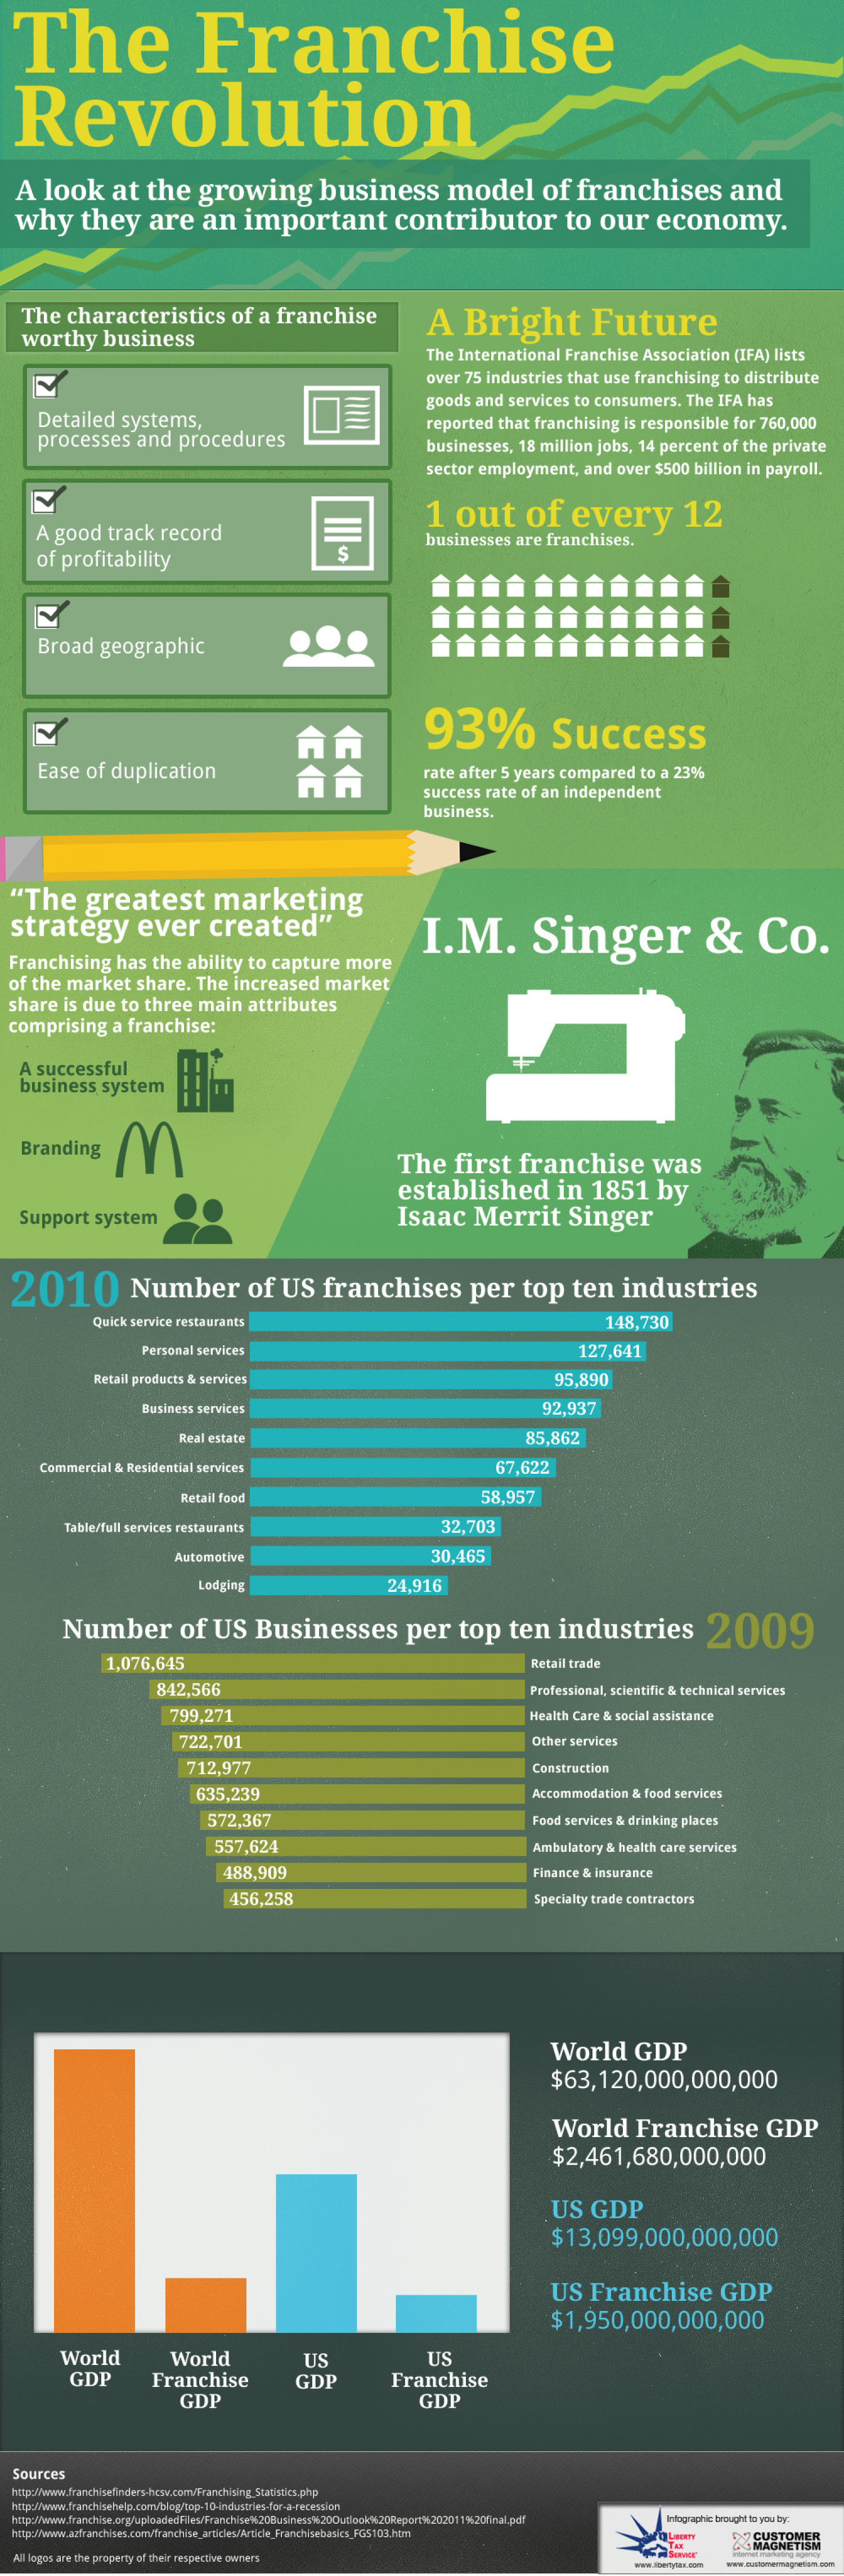 The Franchise Revolution Infographic